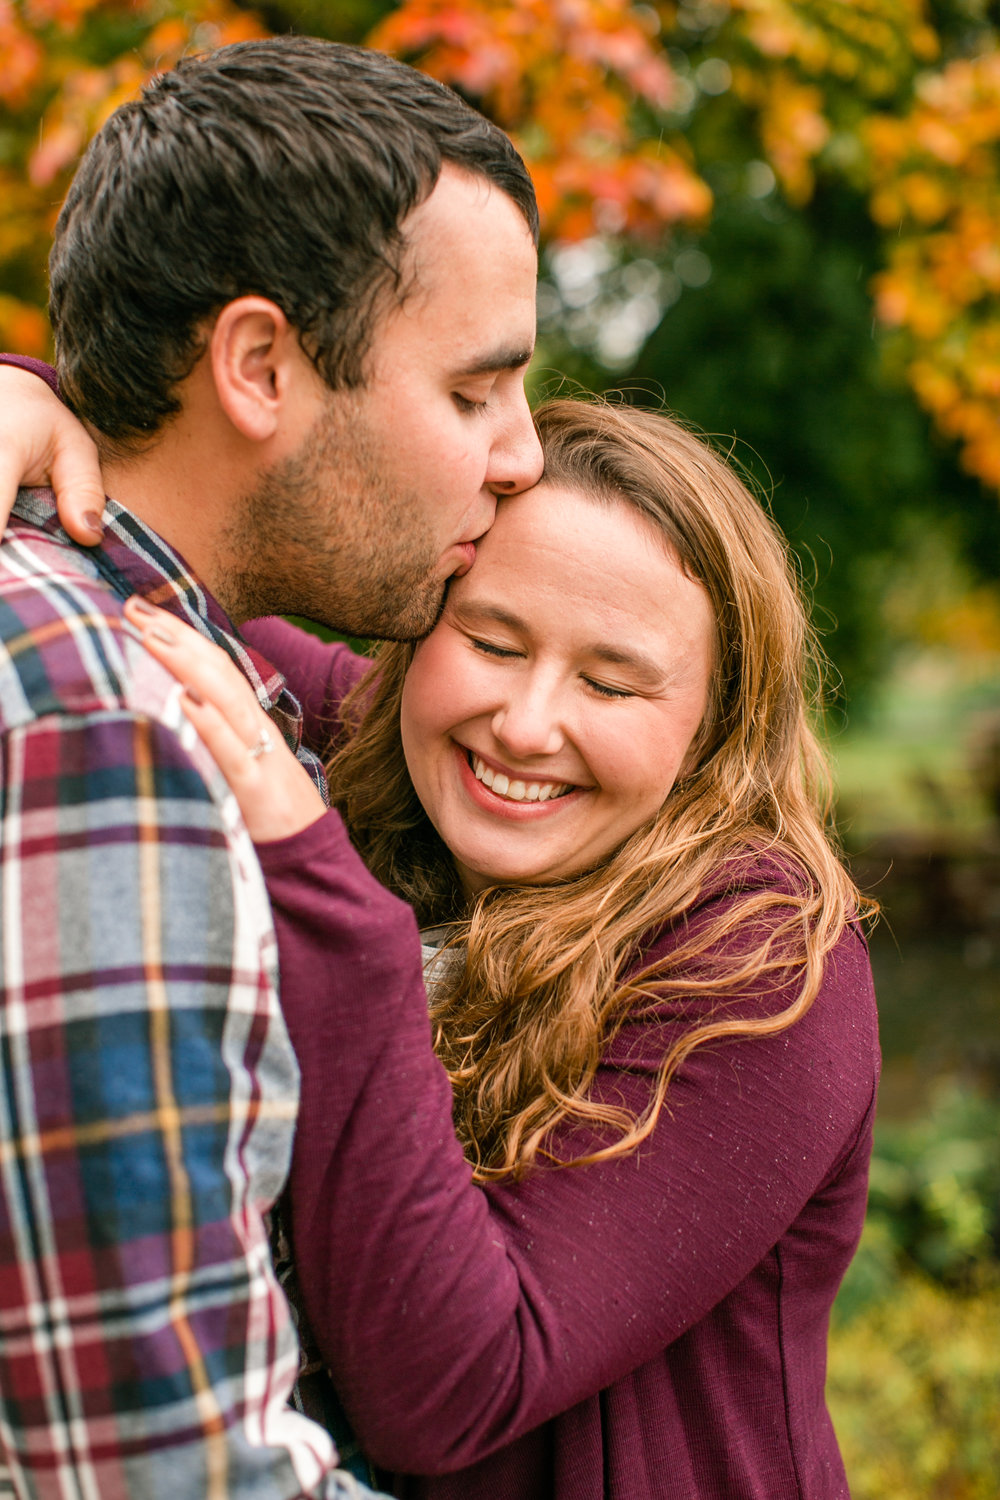 Fall engagement pictures in Des Moines University kissing on forehead